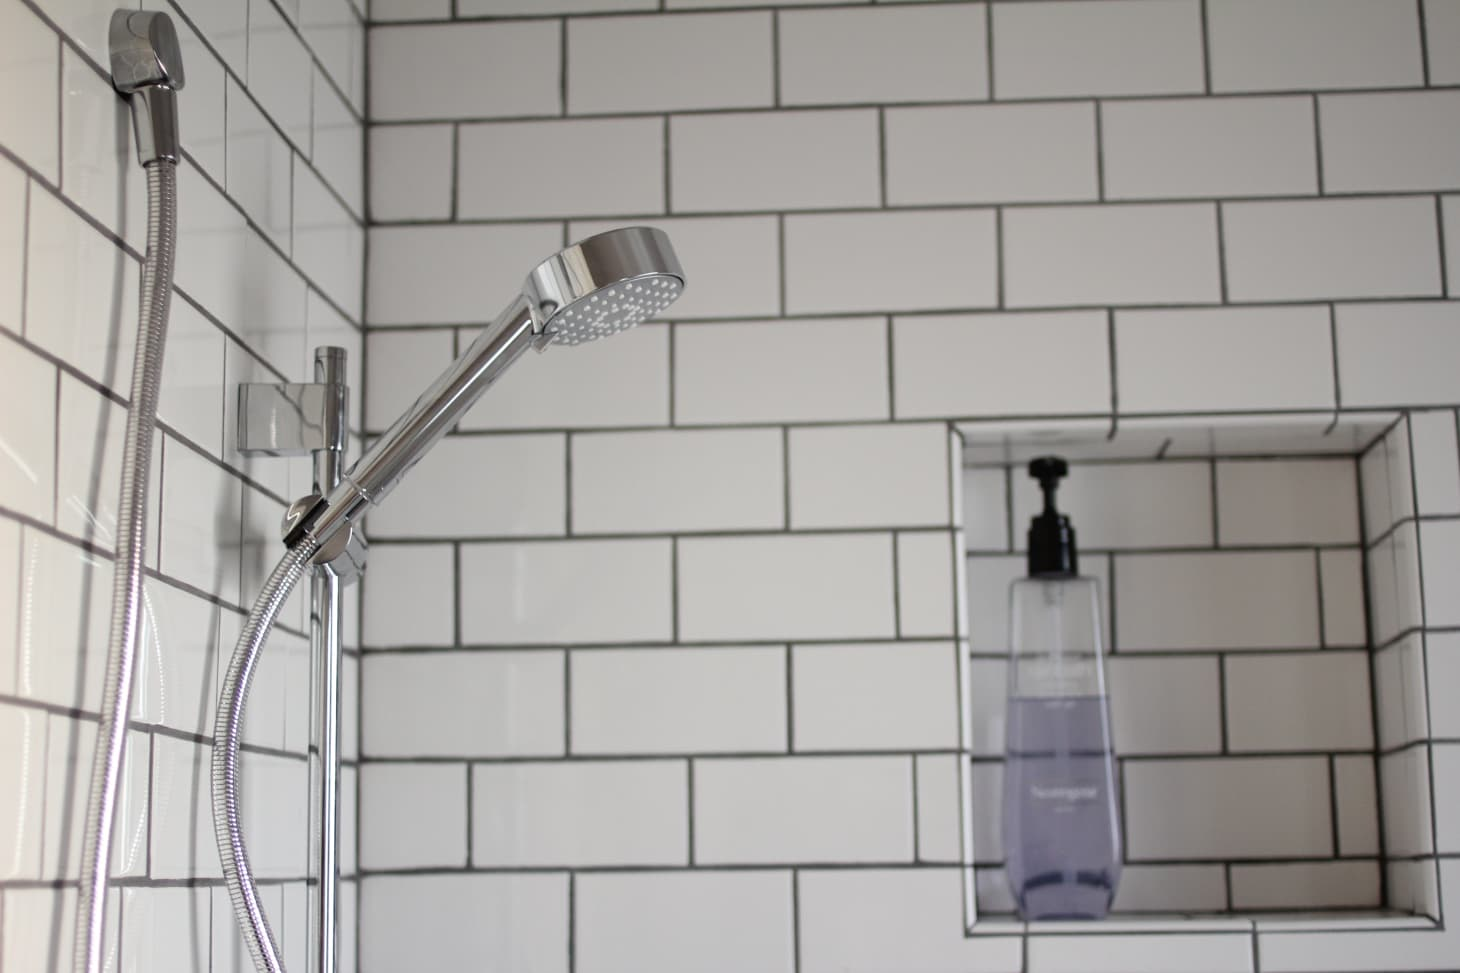 Fantastic Diy Renovation Project How To Build A Recessed Shower Shelf Download Free Architecture Designs Scobabritishbridgeorg